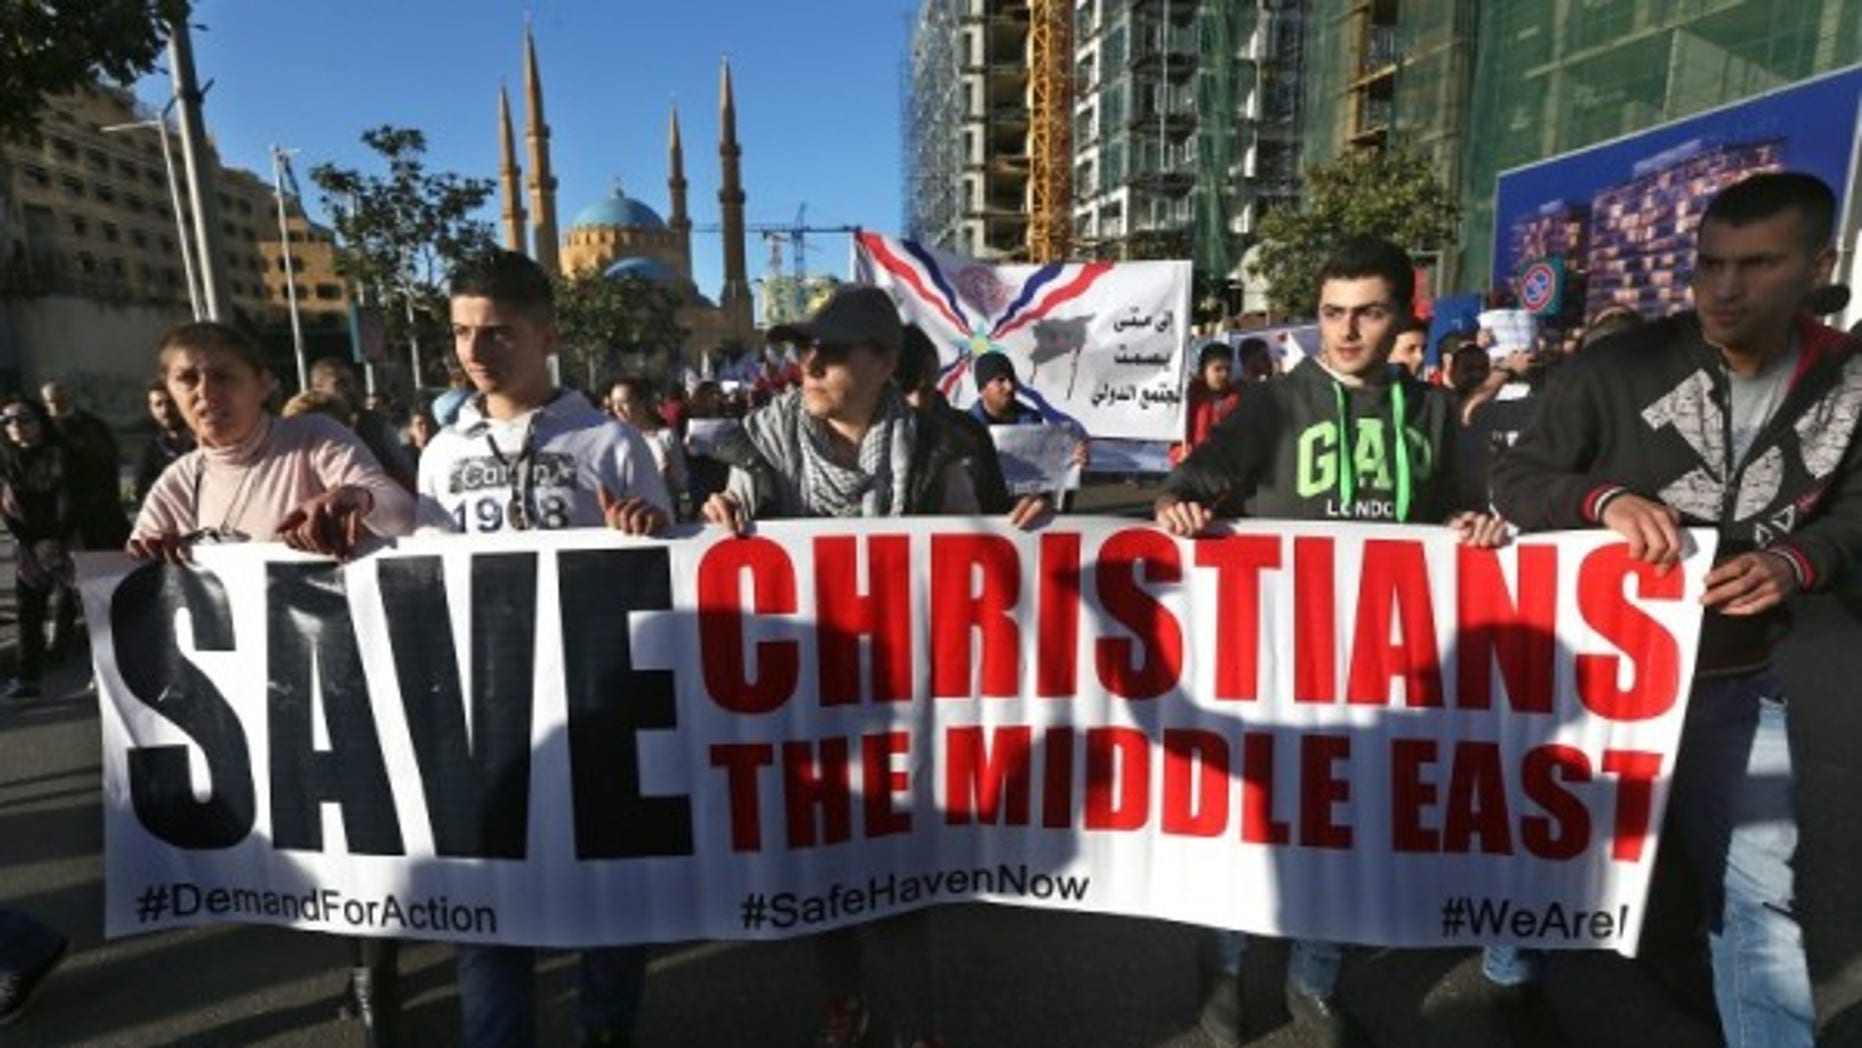 Protesters in Lebanon in solidarity with Christians abducted in Syria and Iraq.